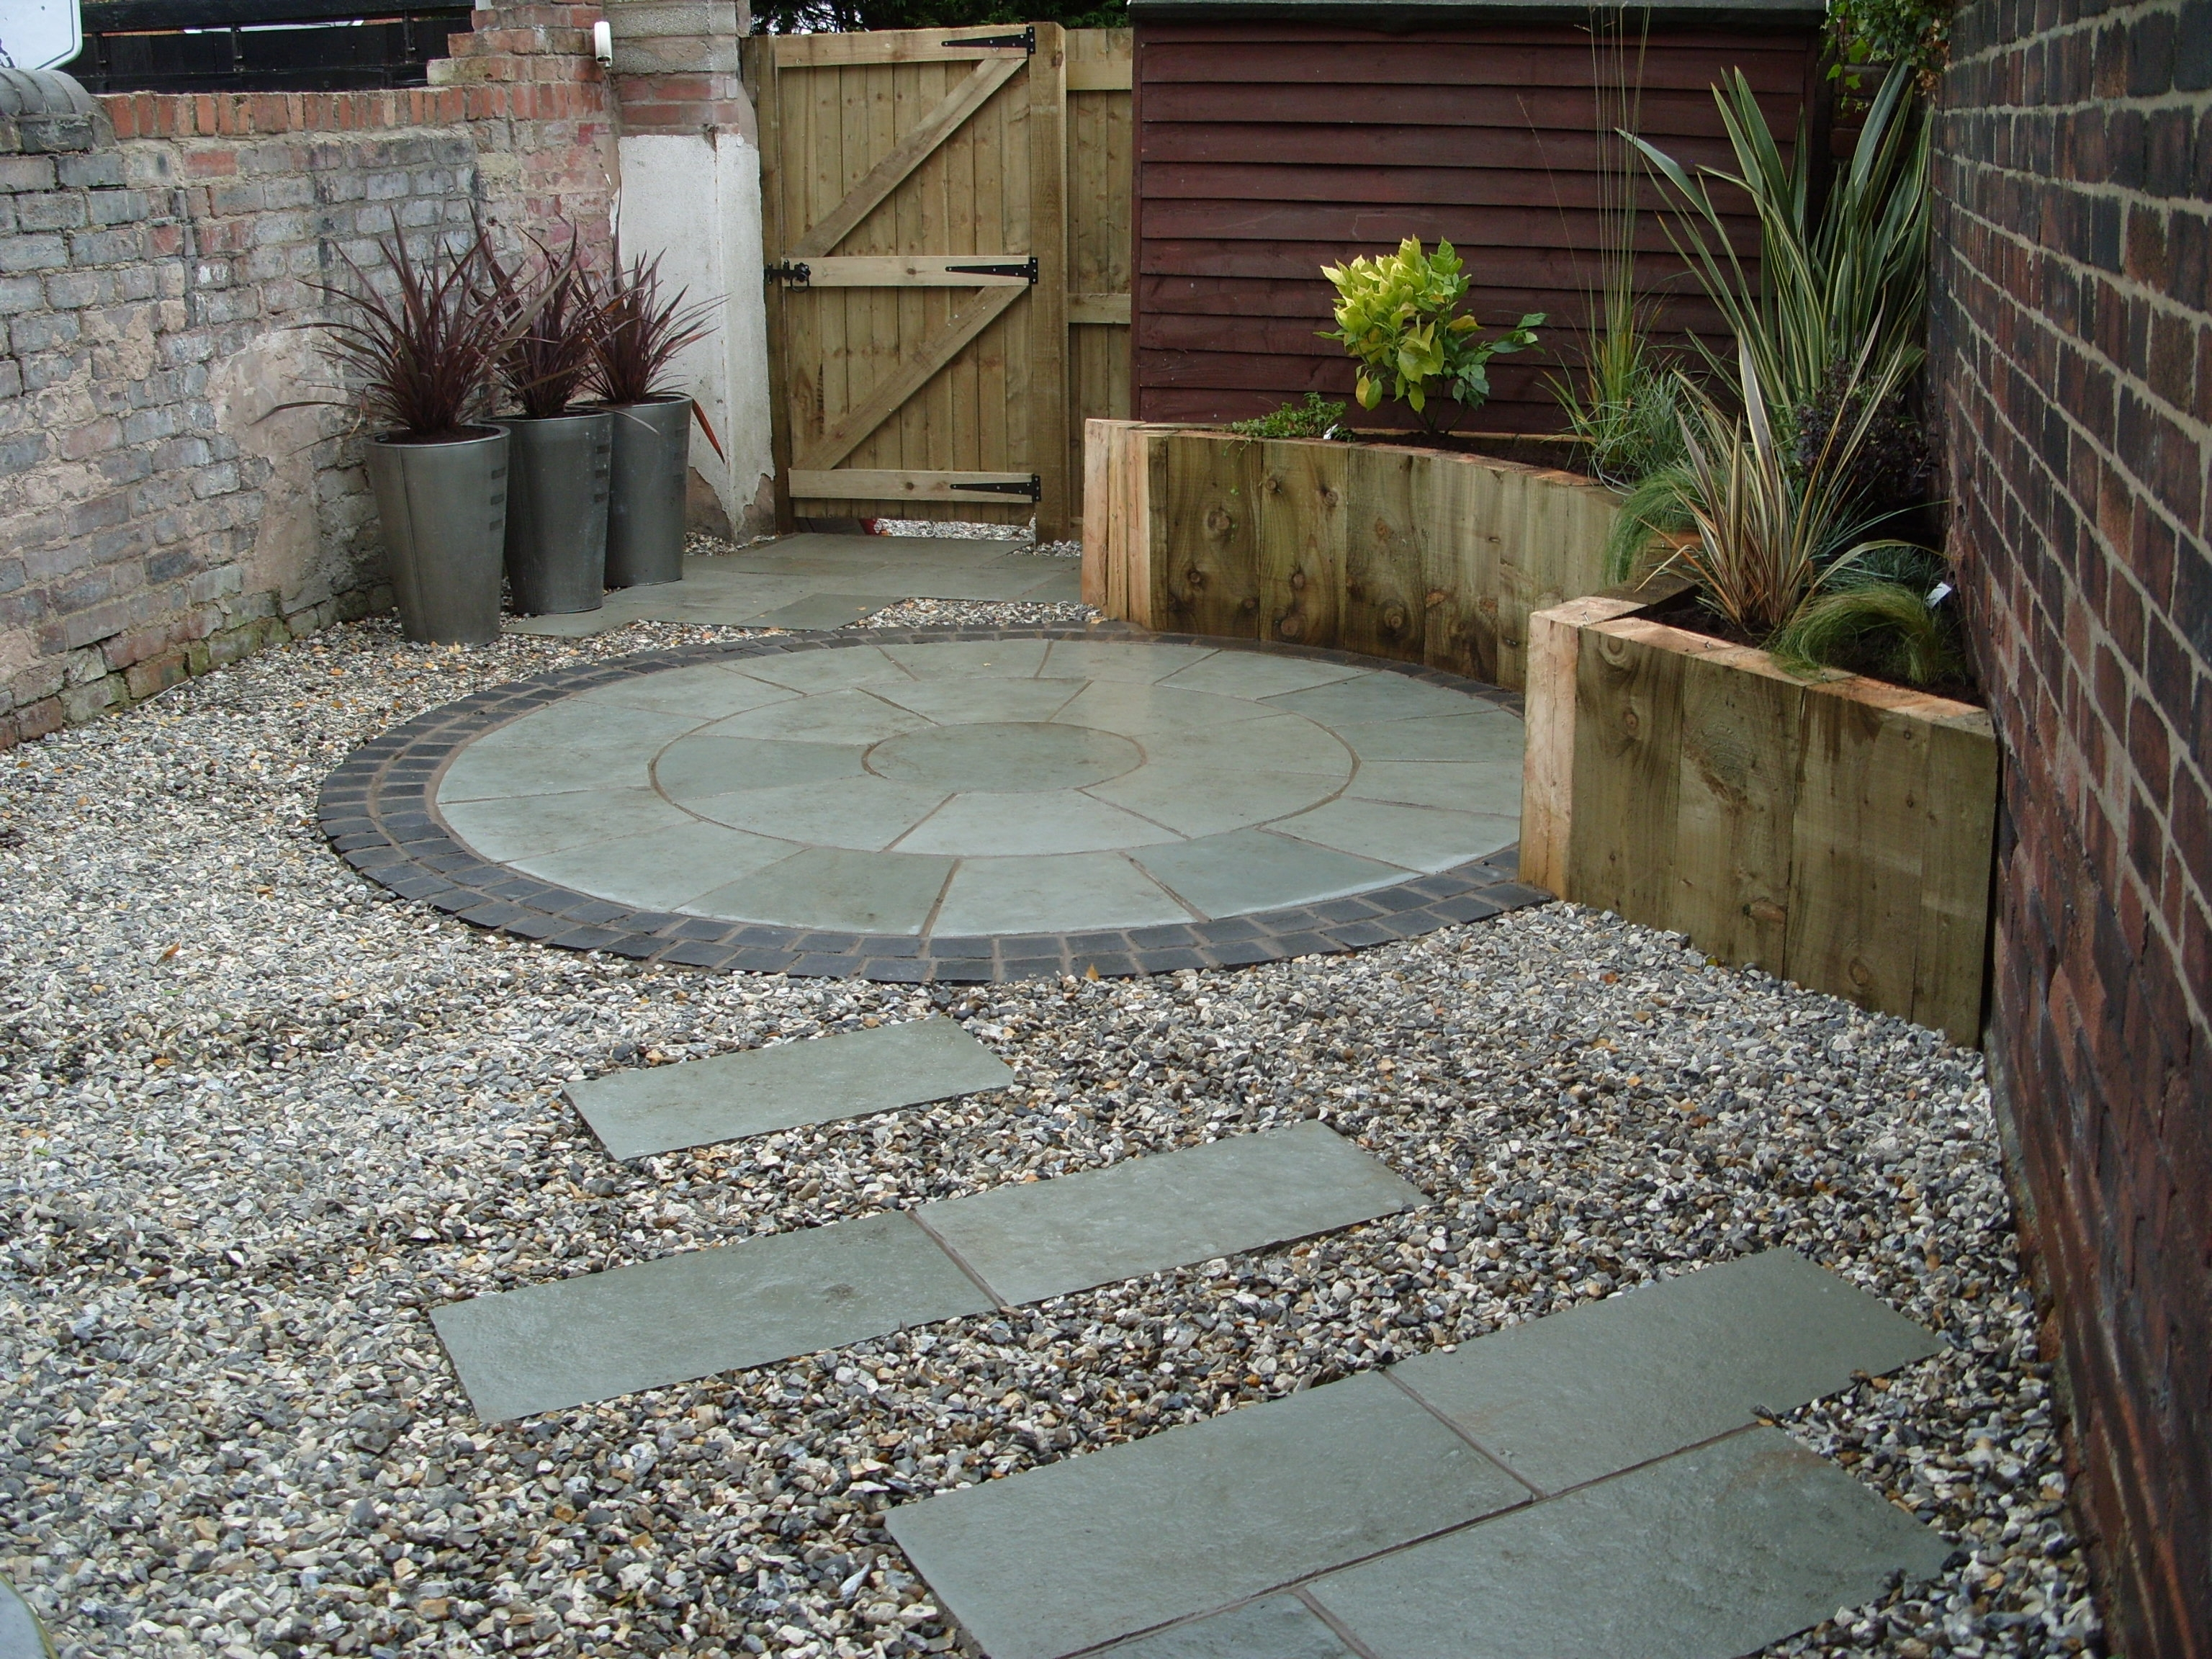 Small Patio Design Plans Of Paving Ideas For Small Back Gardens Garden Design